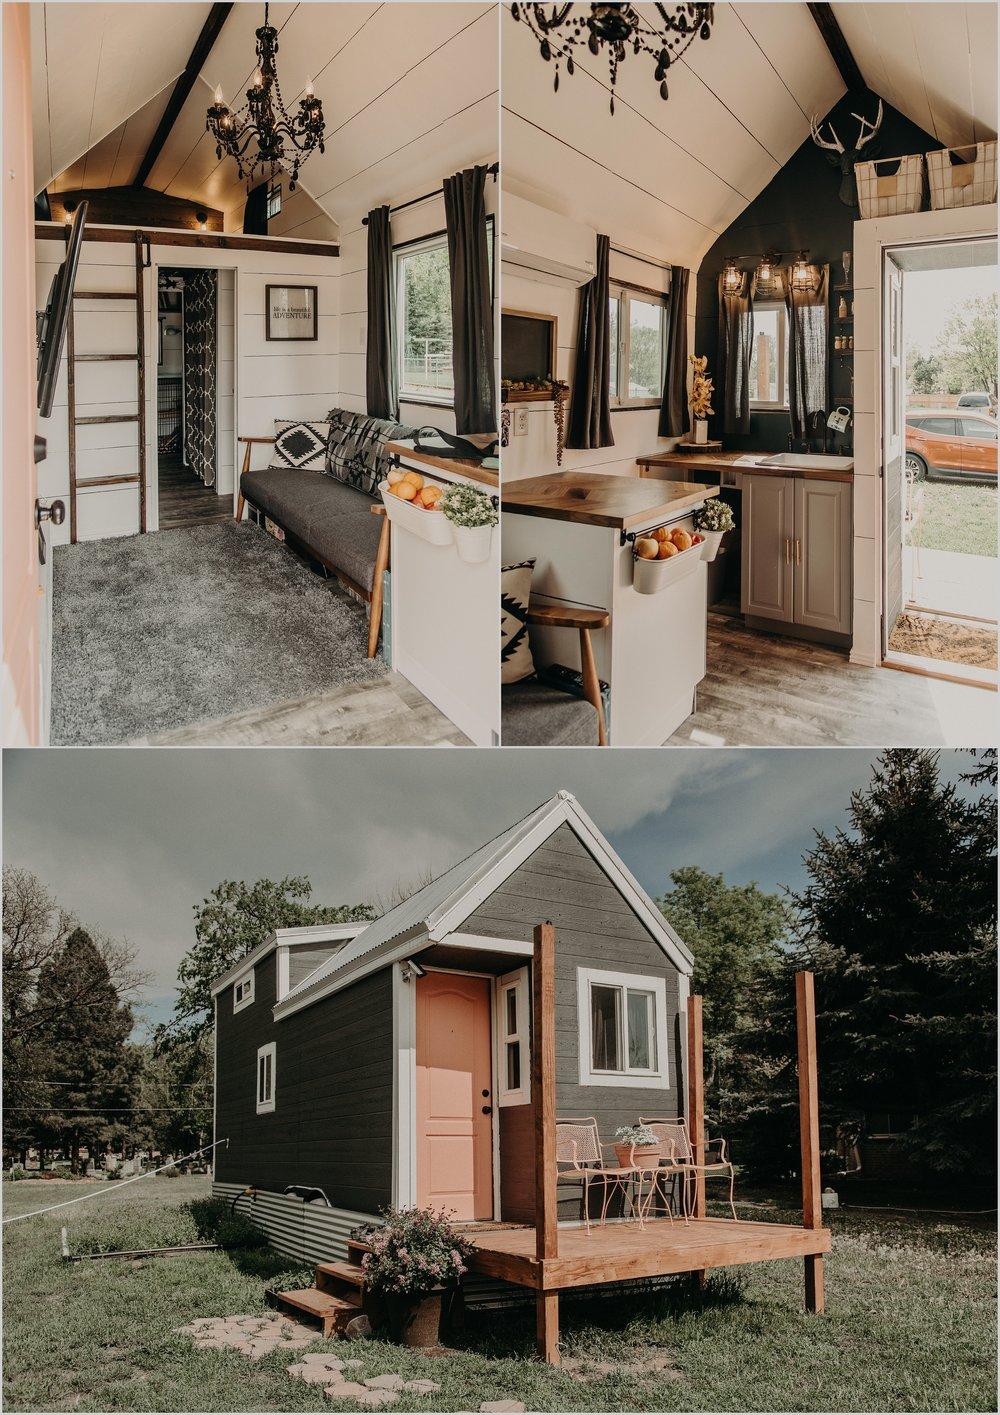 Ashley and Kurtis built their own tiny home entirely on their own. Totally Pinspo and swoon worthy!